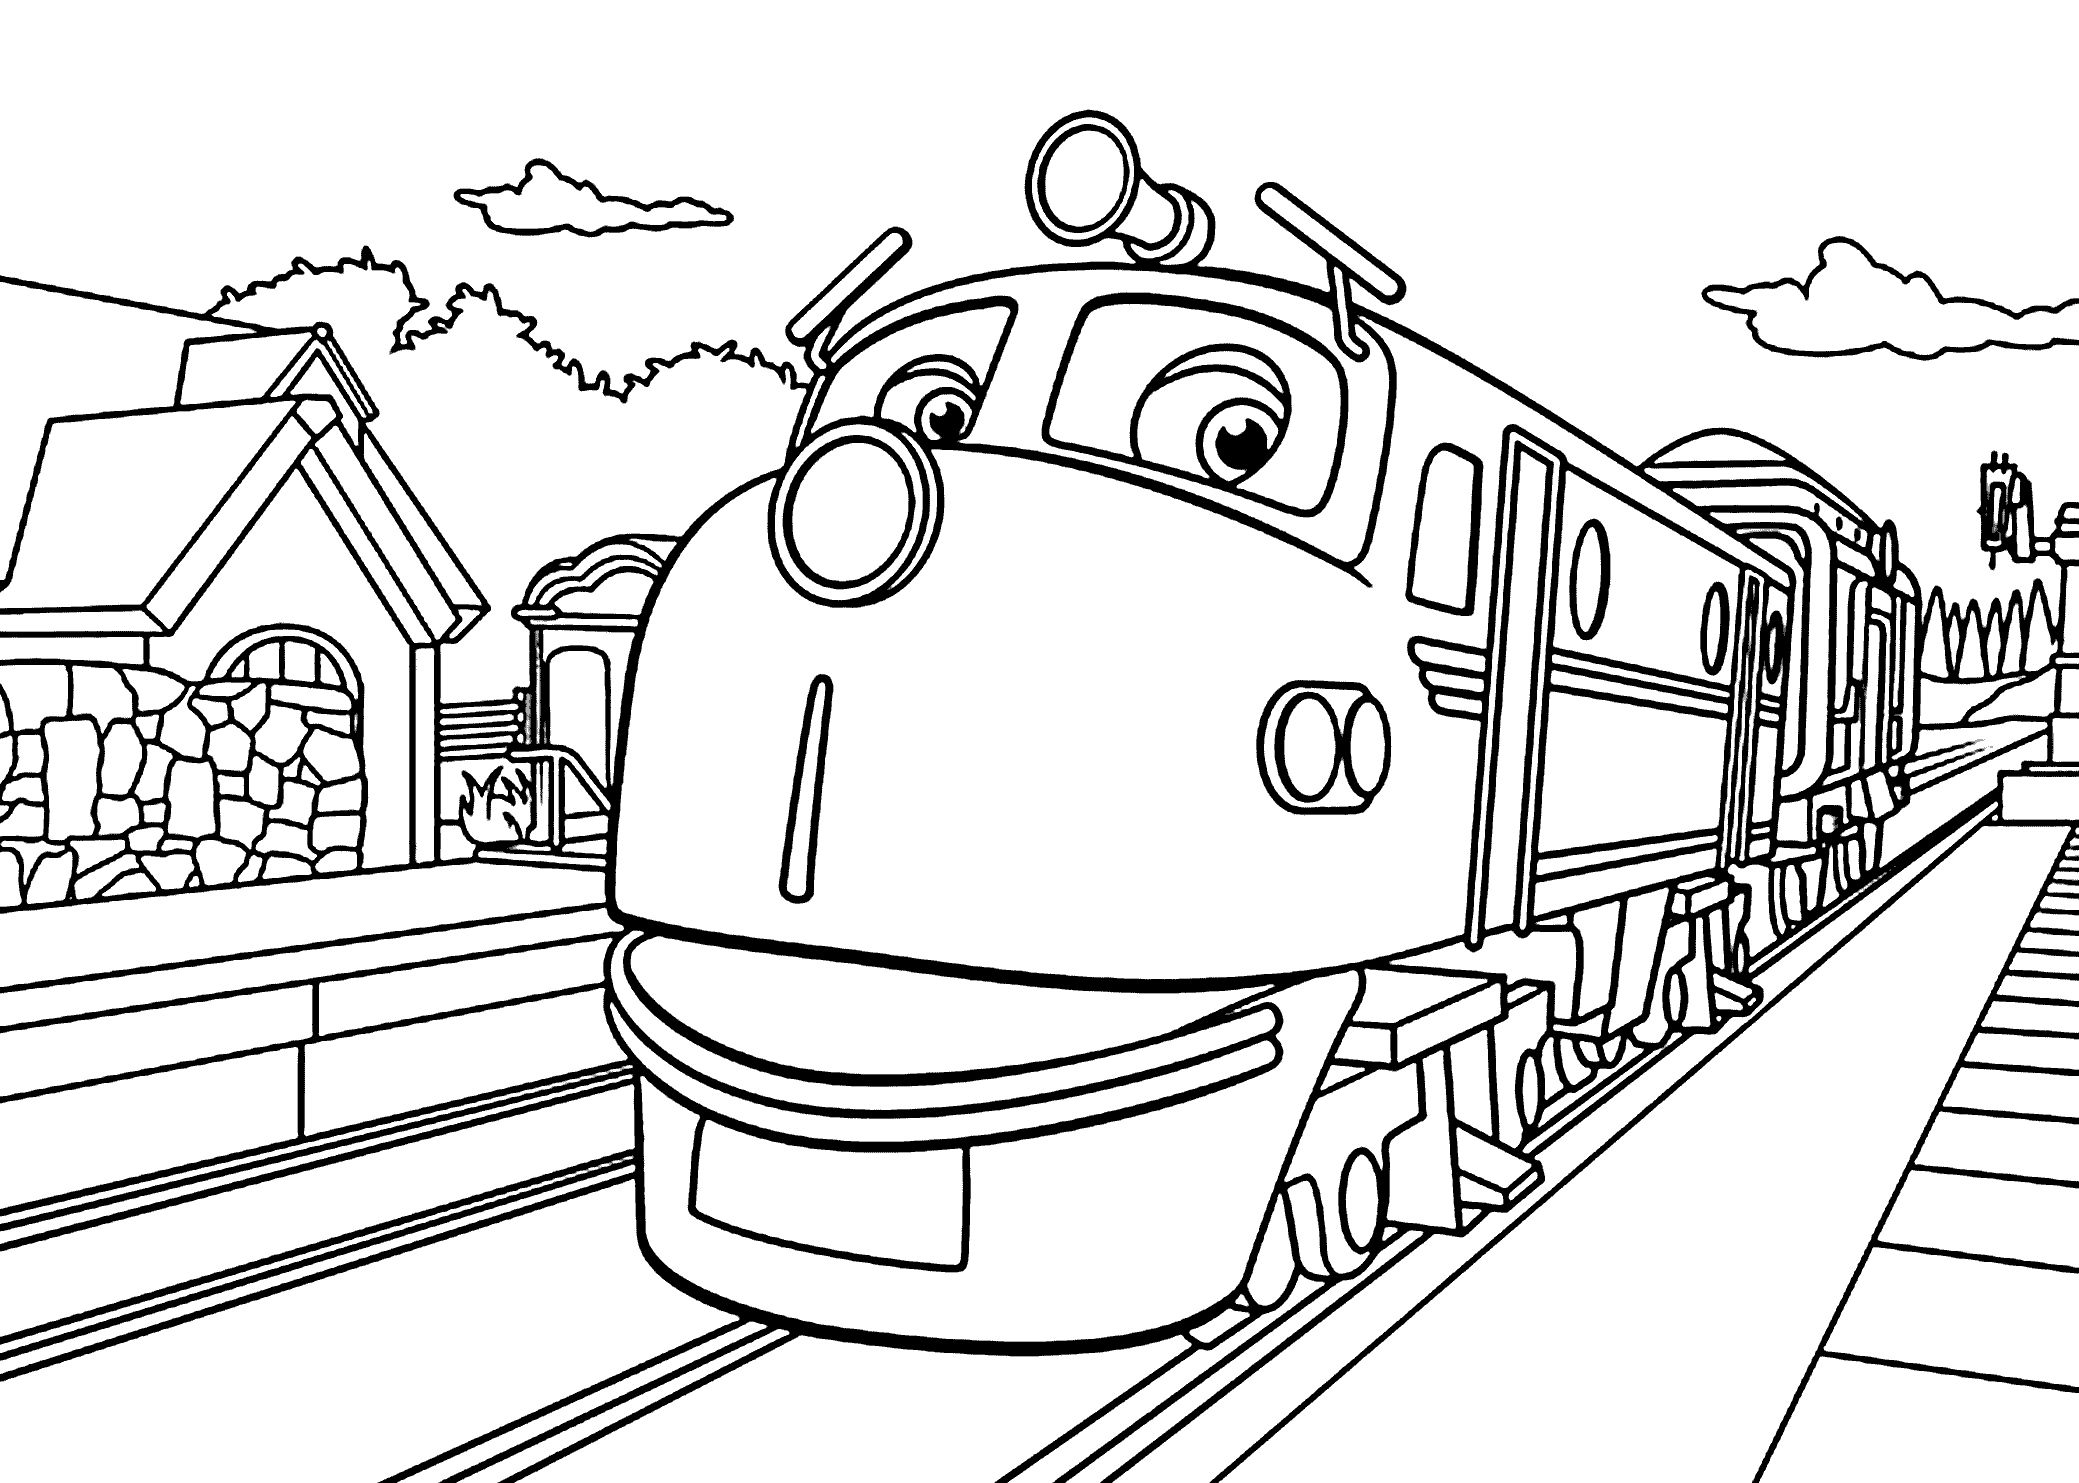 Caboose Coloring Page Coloring Pages Printable Train Coloring Pages Fun Time Caboose Page Dengan Gambar Disney